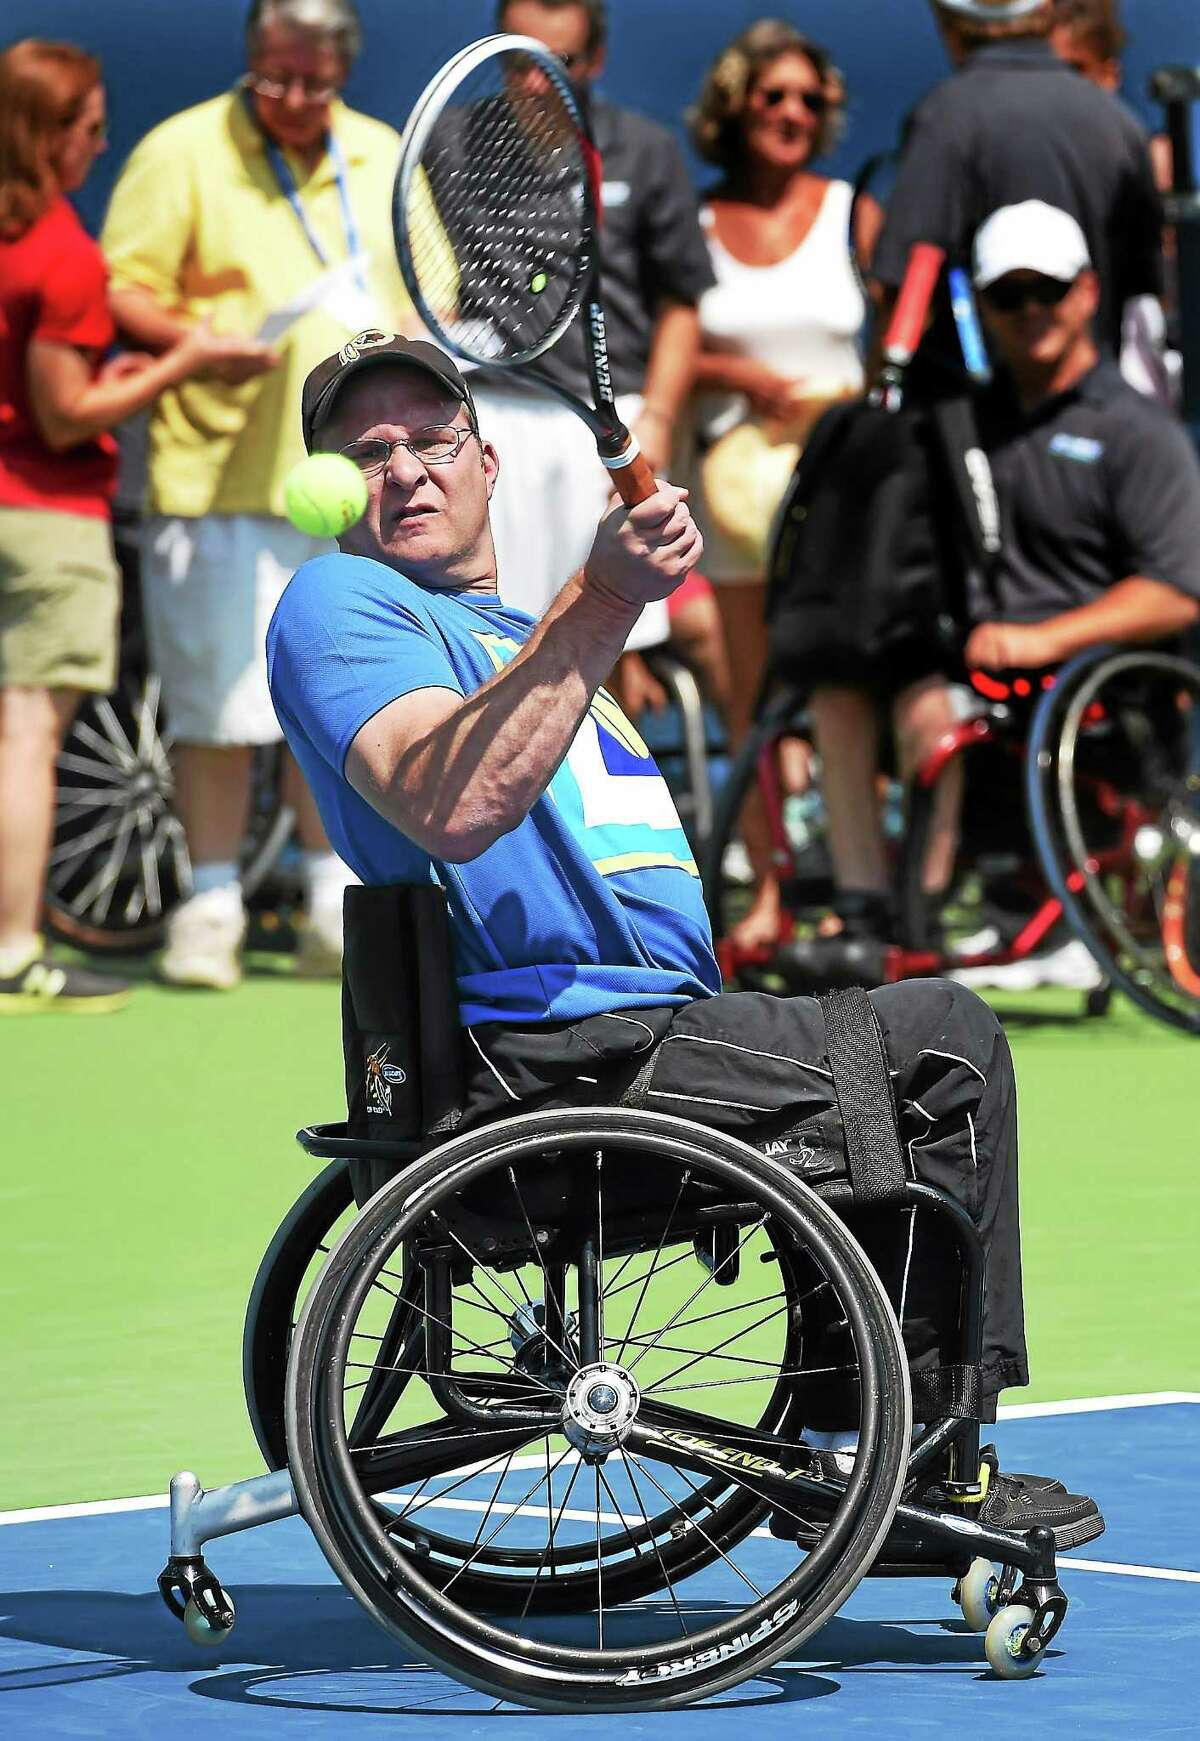 (Mara Lavitt ó New Haven Register) August 20, 2014 New Haven Gaylord Sports Assoc. brought wheelchair tennis team members, as well as athletes from the Magic Lincer Tennis Academy in Windsor to conduct an adaptive tennis demonstration at the Connecticut Open. Ryan Martin of Monroe returns. mlavitt@newhavenregister.com